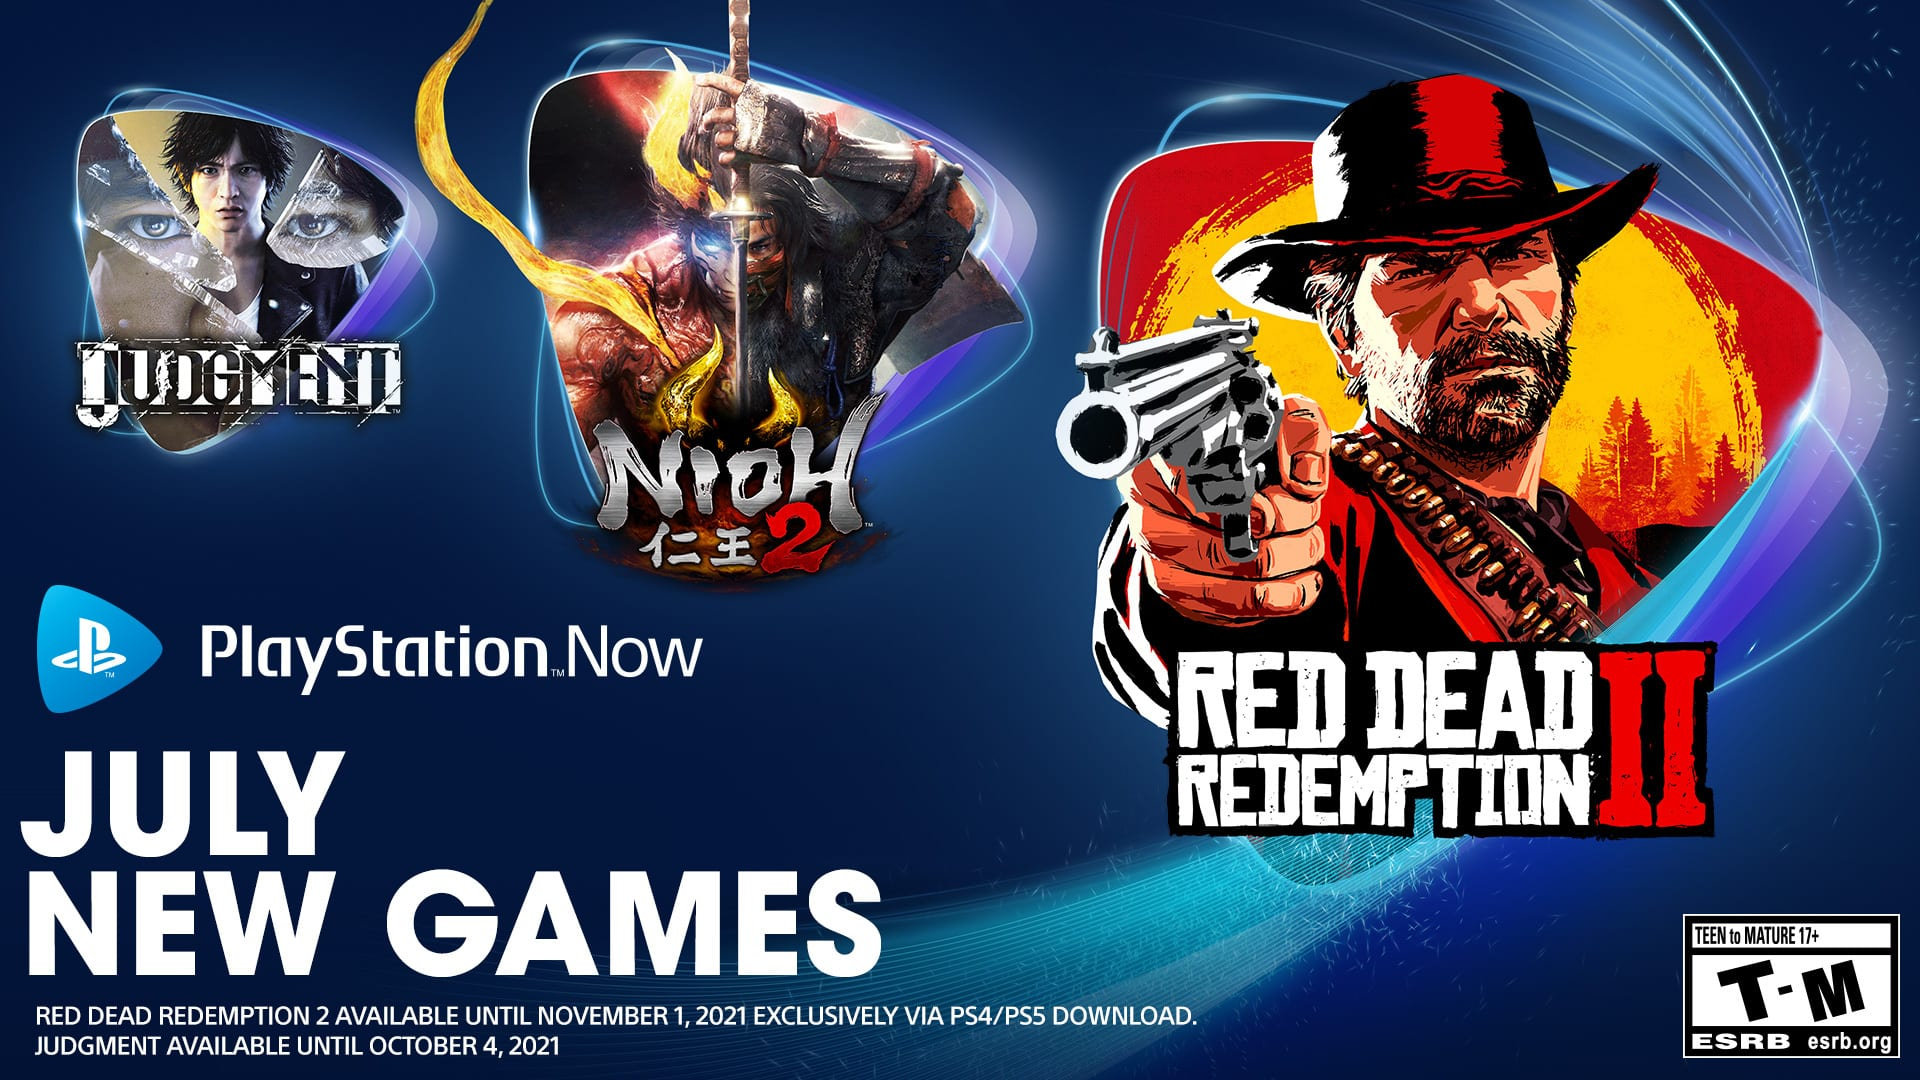 PS Now Adds Red Dead Redemption 2, God of War, And Nioh 2